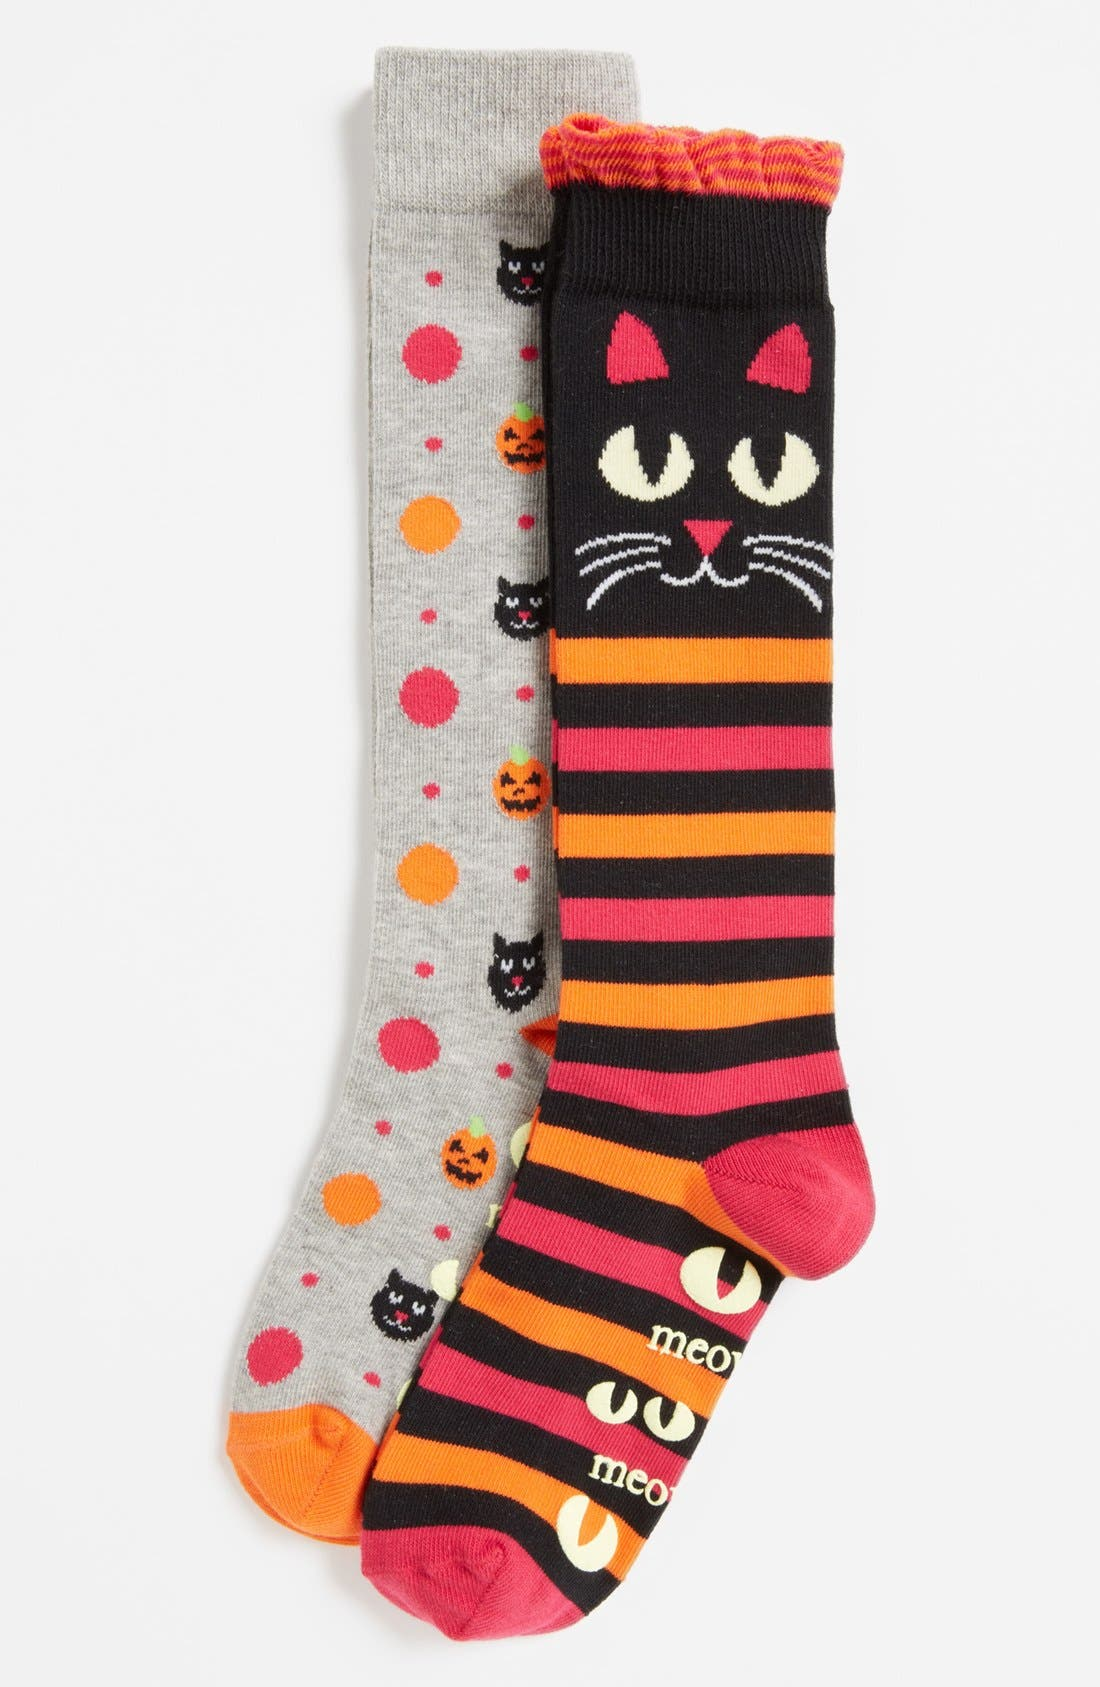 Main Image - Nordstrom 'Meowlloween' Socks (2-Pack) (Toddler Girls, Little Girls & Big Girls)